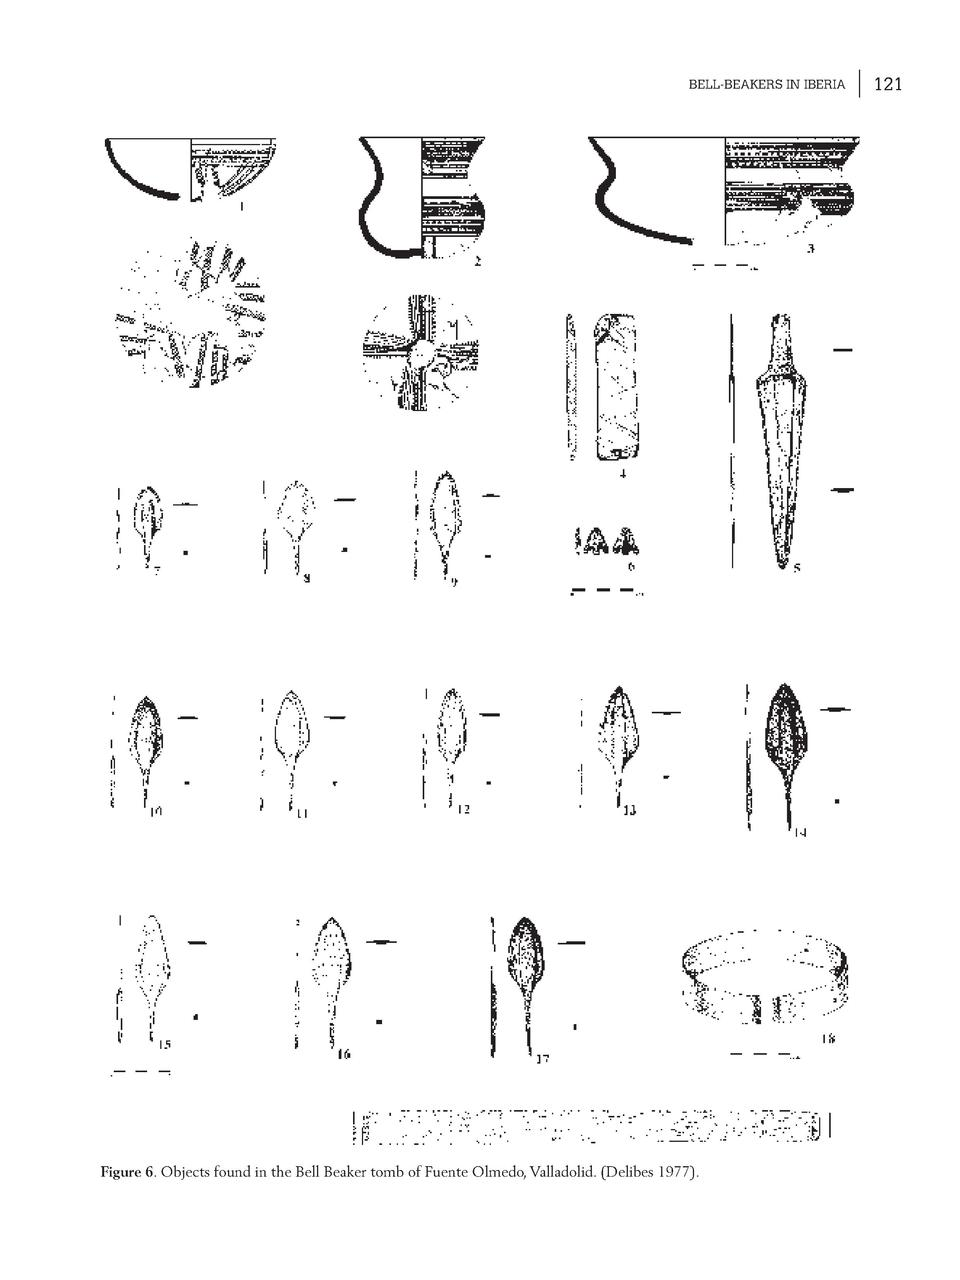 BELL-BEAKERS IN IBERIA  Figure 6. Objects found in the Bell Beaker tomb of Fuente Olmedo, Valladolid.  Delibes 1977 .  121...